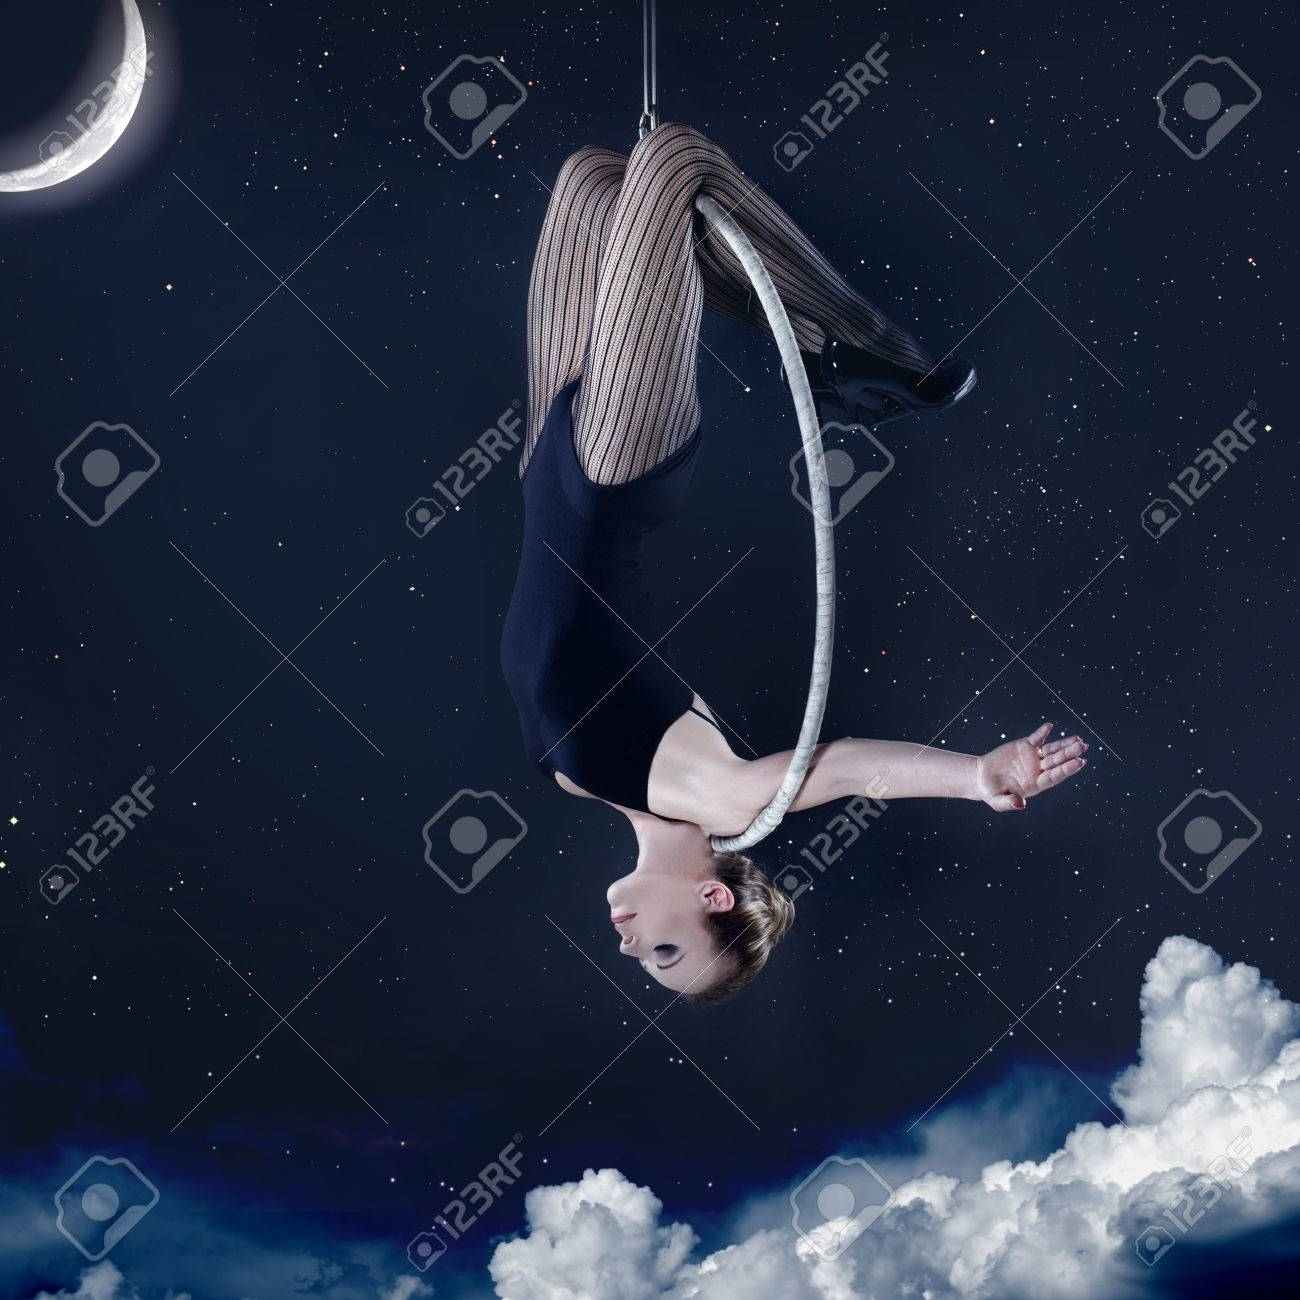 60bf8da4181e6 Woman hanging upside-down on aerial hoop at night over clouds,..